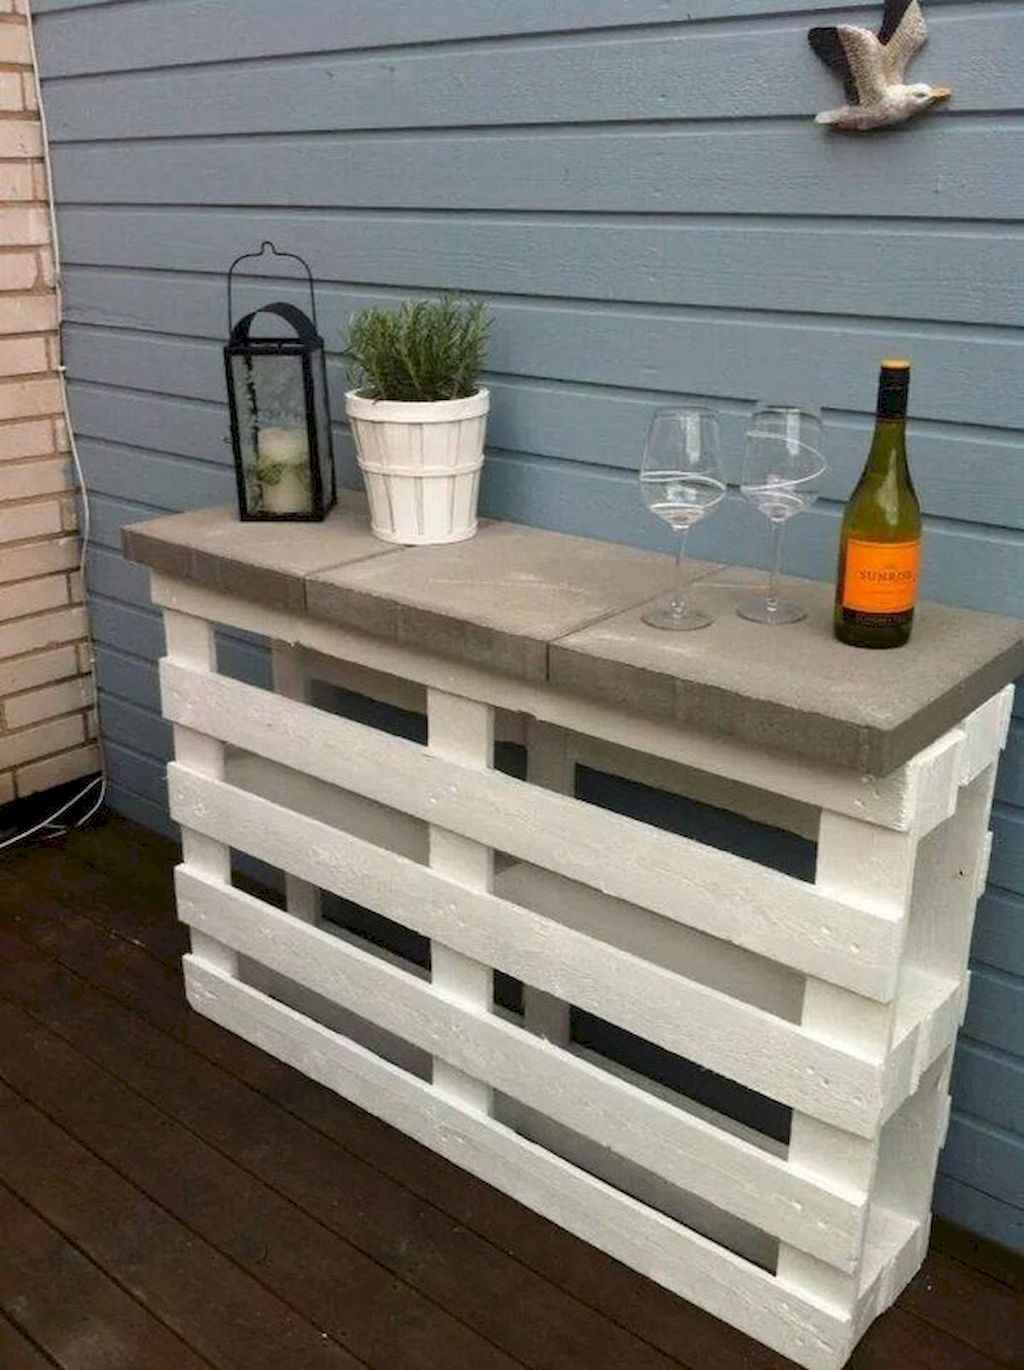 Cleverly diy porch patio decorating ideas (37)